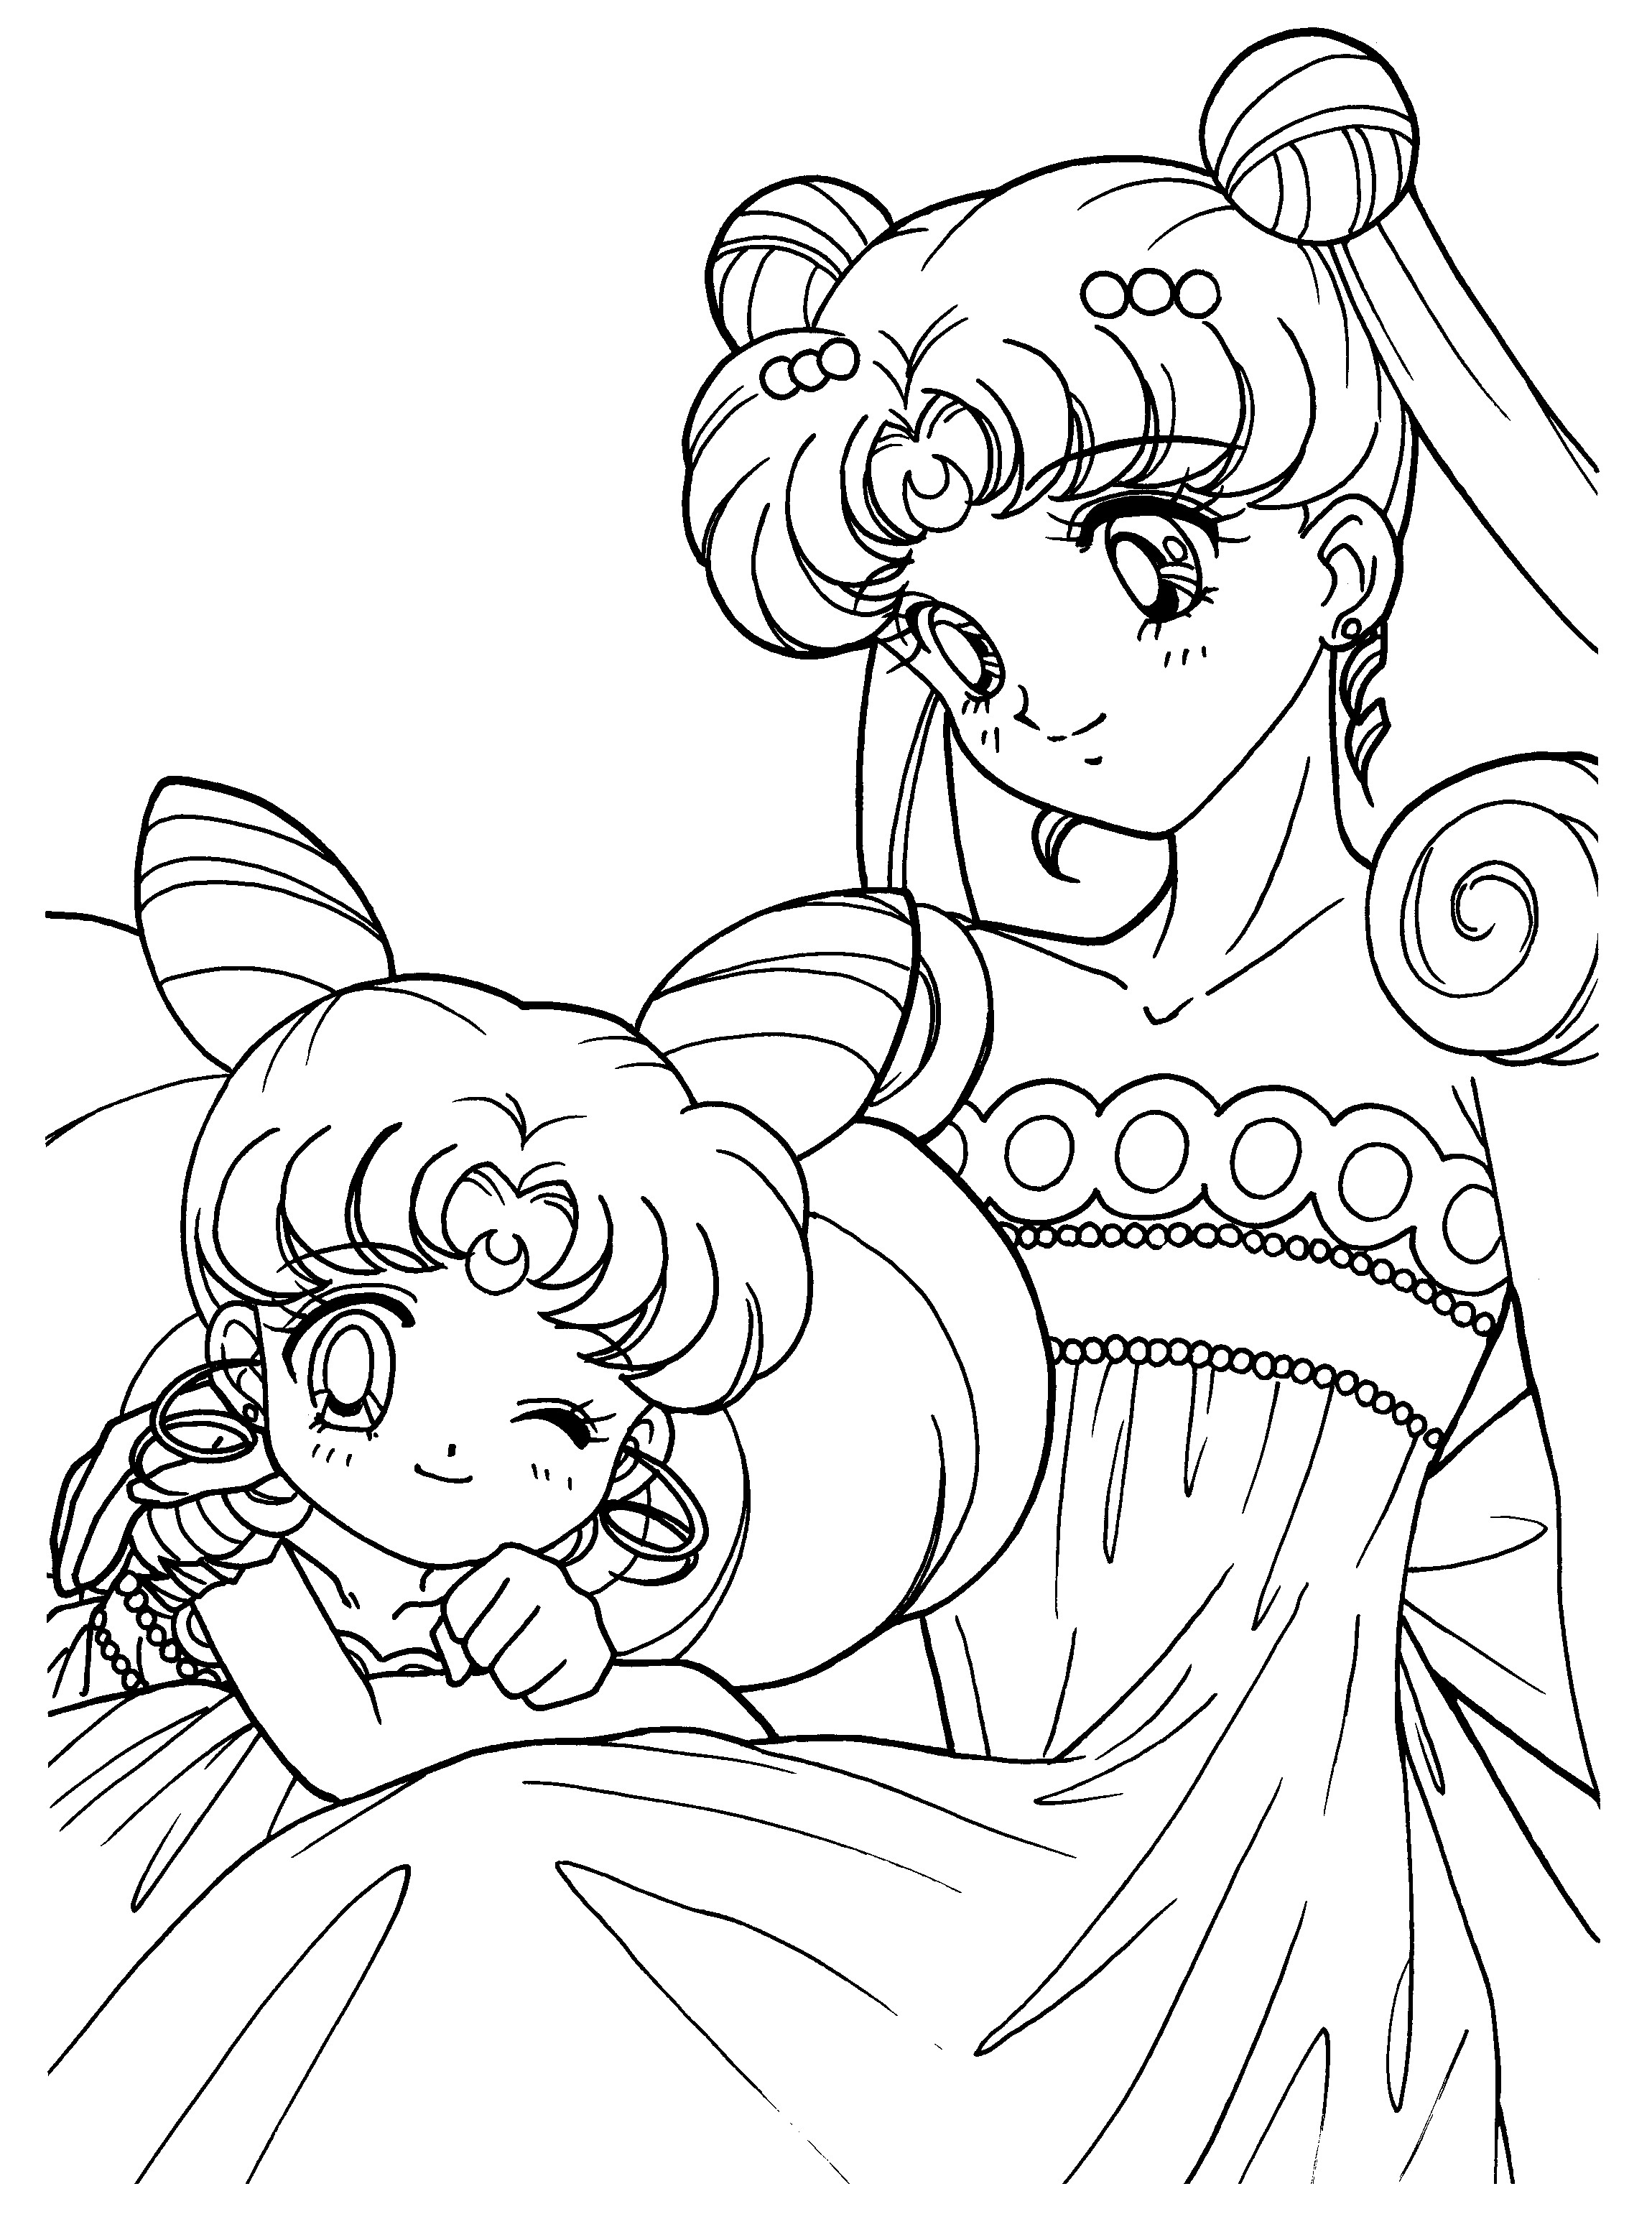 sailor moon coloring pages sailor moon coloring pages to download and print for free pages coloring sailor moon